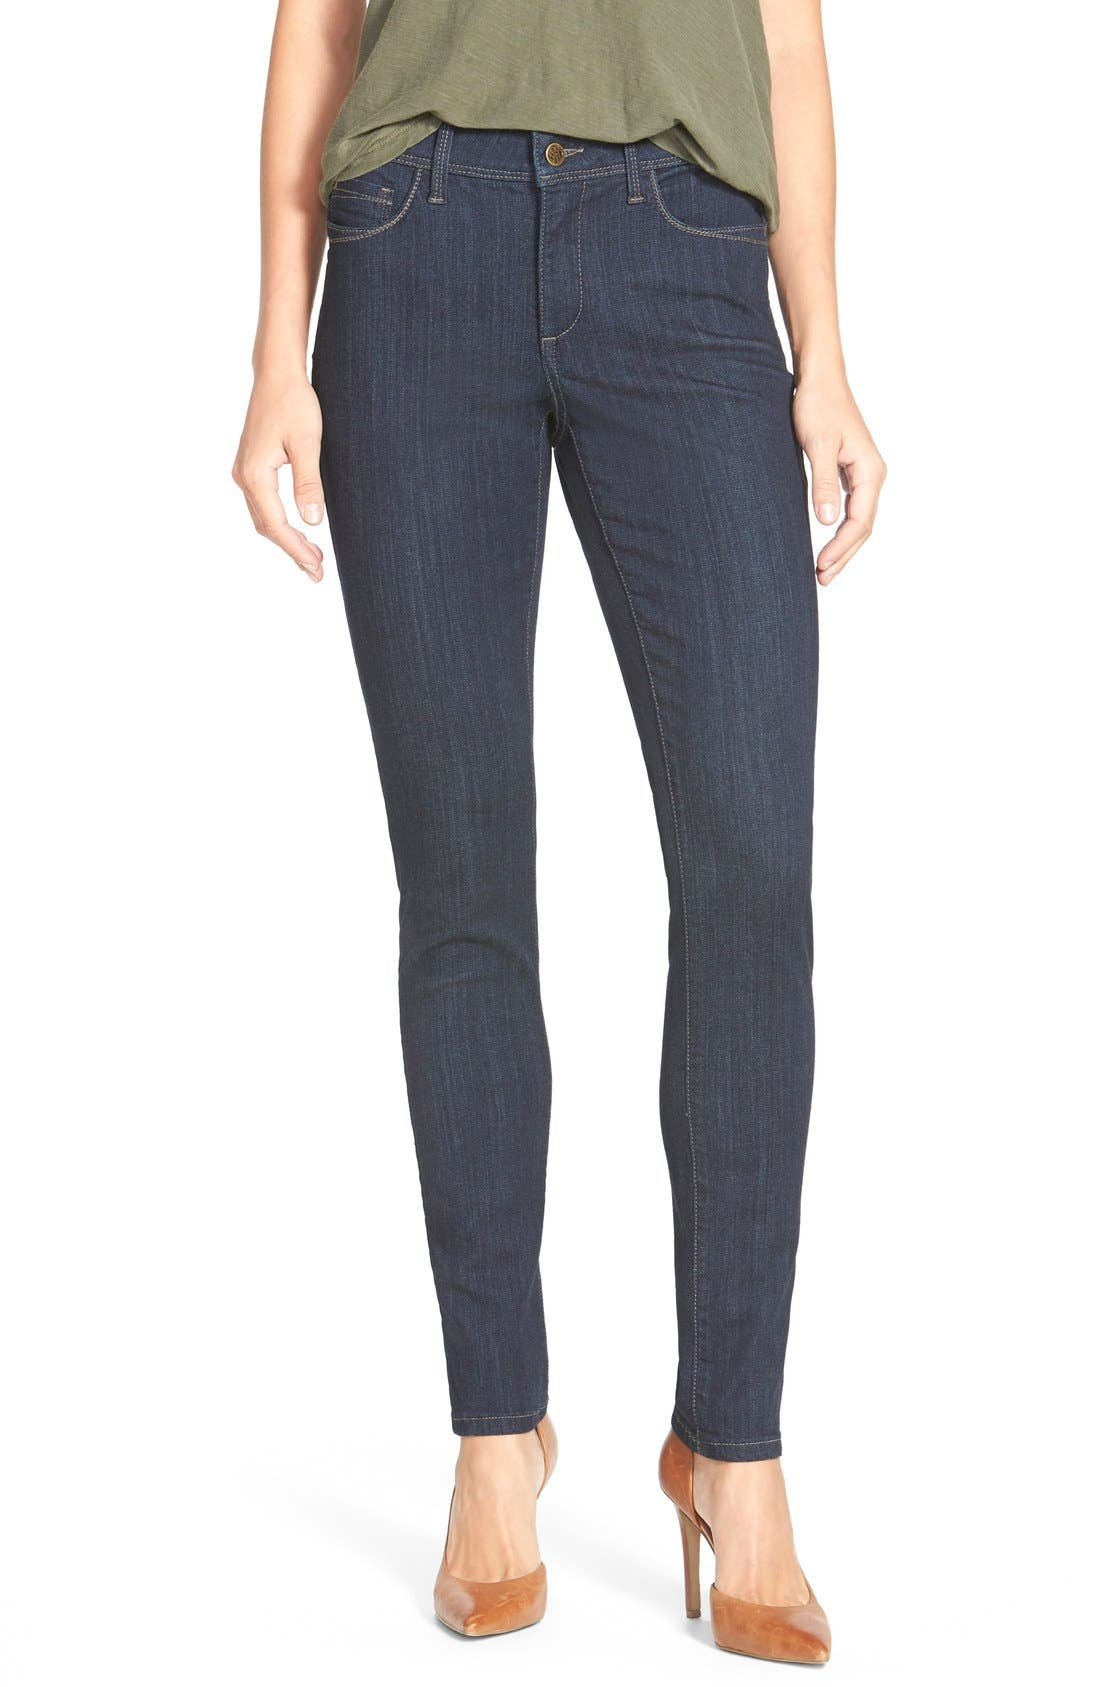 Alternate Image 1 Selected - NYDJ 'Ami' Stretch Skinny Jeans (Regular & Petite)